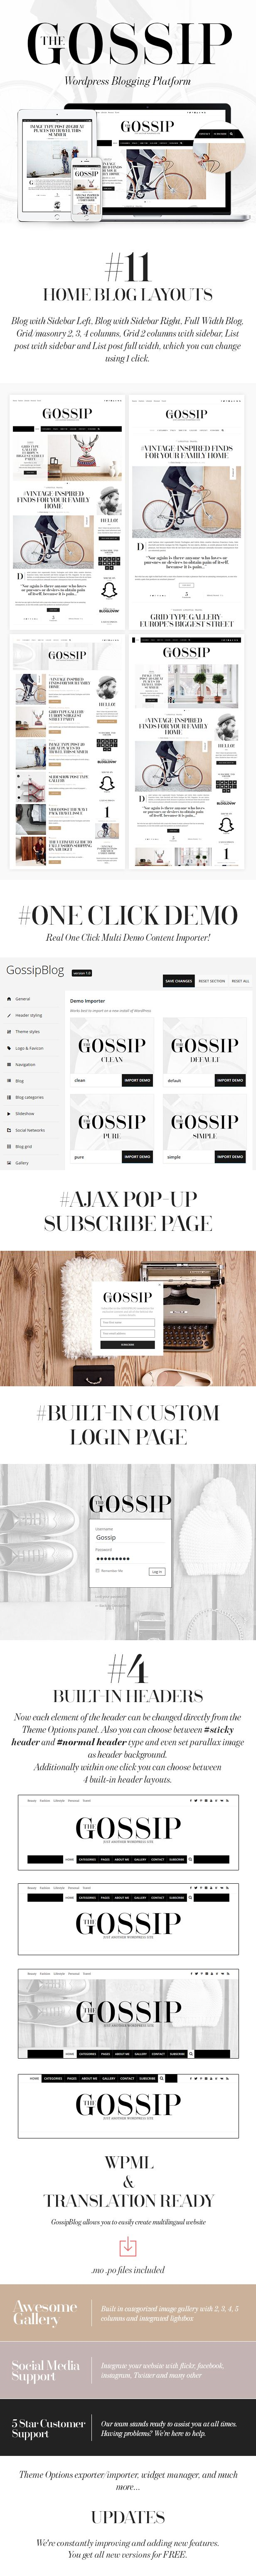 GossipBlog - Pure & Simple Personal WordPress Blog Theme Compatible with WP 4.4.2 GossipBlog is a simple, clean, personal, modern and professional blog ideal for spreading stories.   It's totally r...